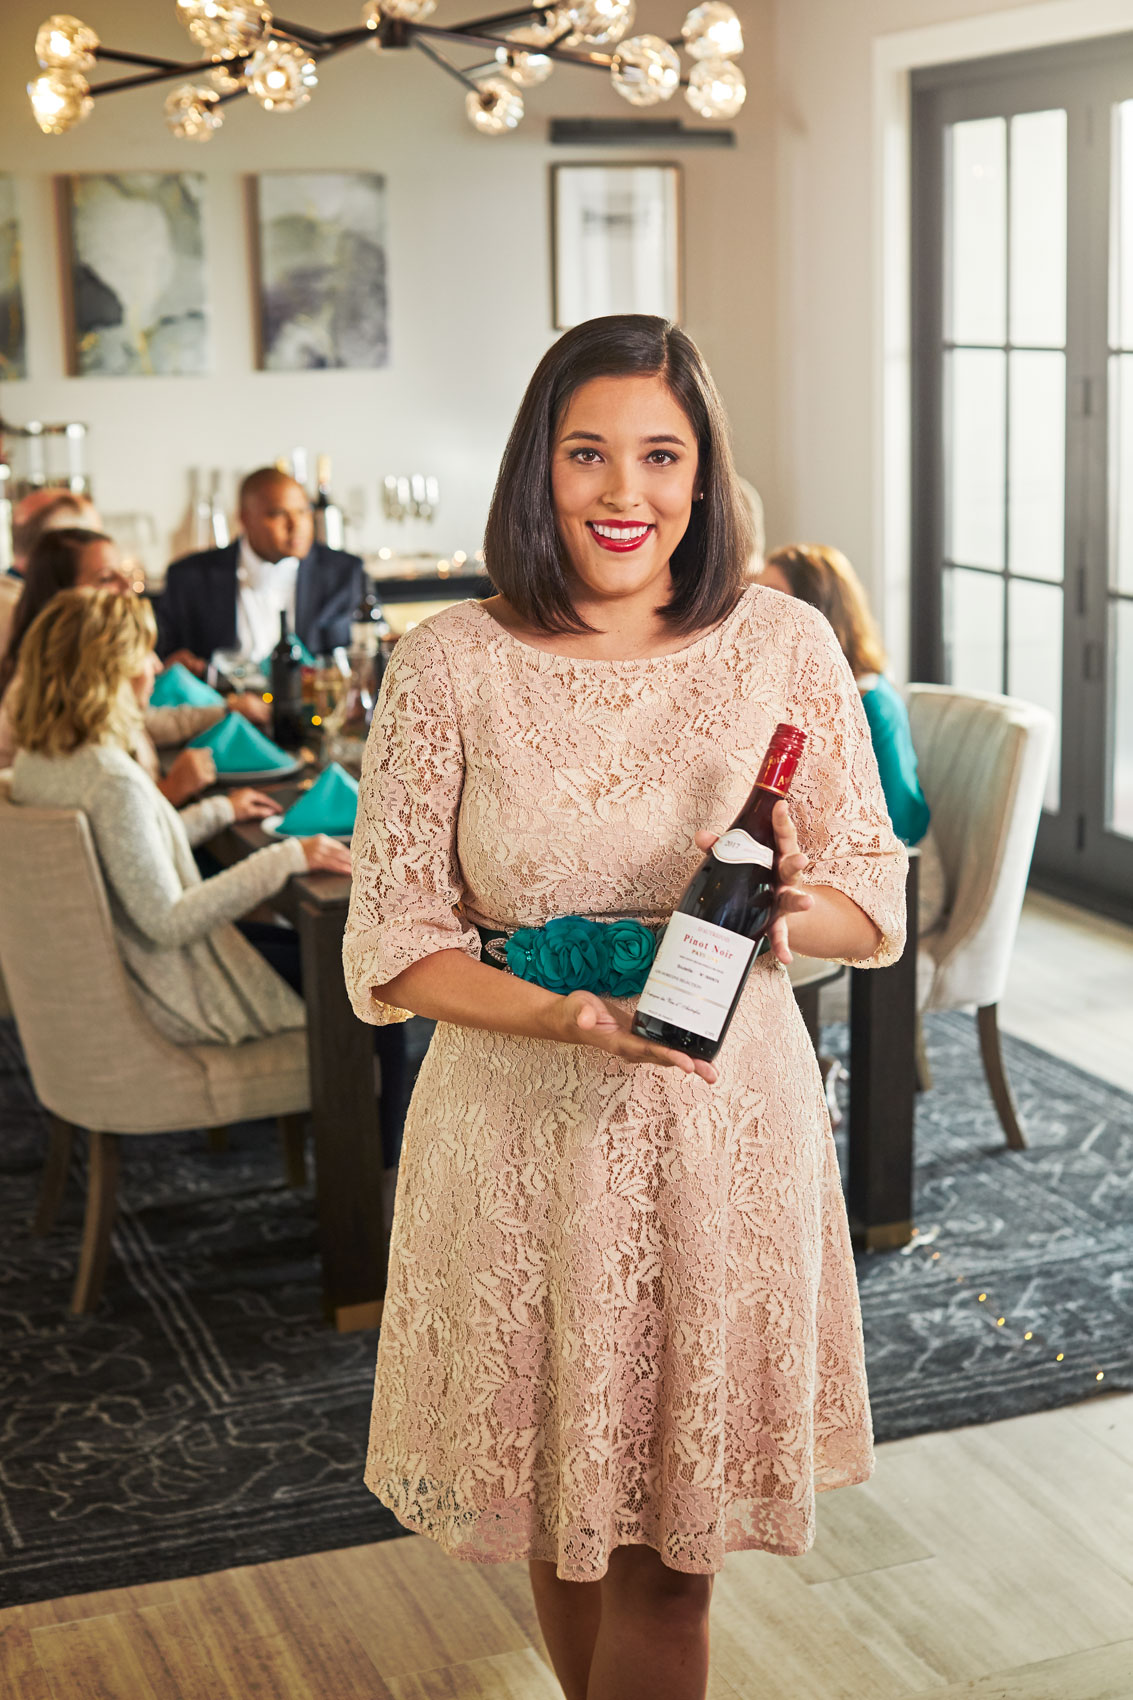 host holding bottle of wine for portrait, washington dc commercial photography